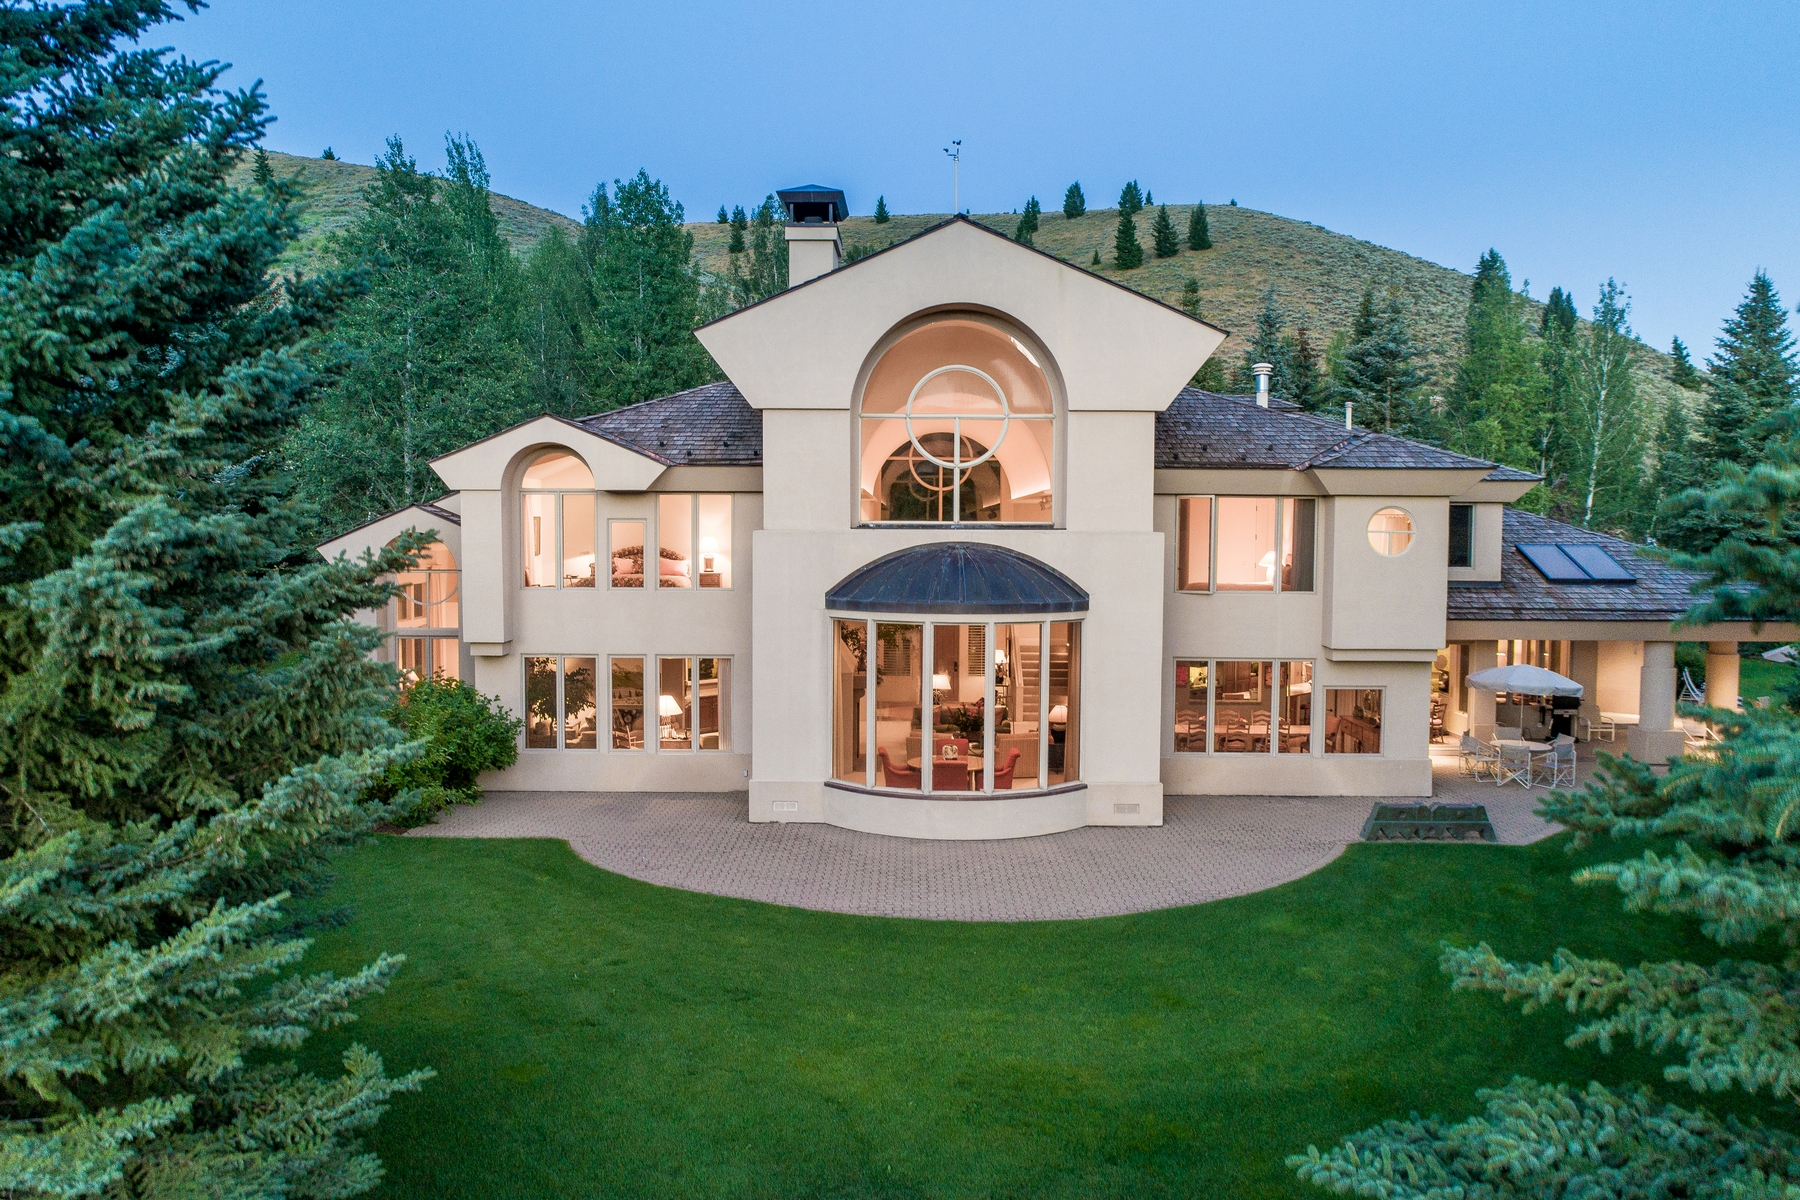 Single Family Home for Sale at Barry Berkus Designed Home On Prime Bigwood Golf Course Property 195 S Bigwood Dr S Ketchum, Idaho 83340 United States